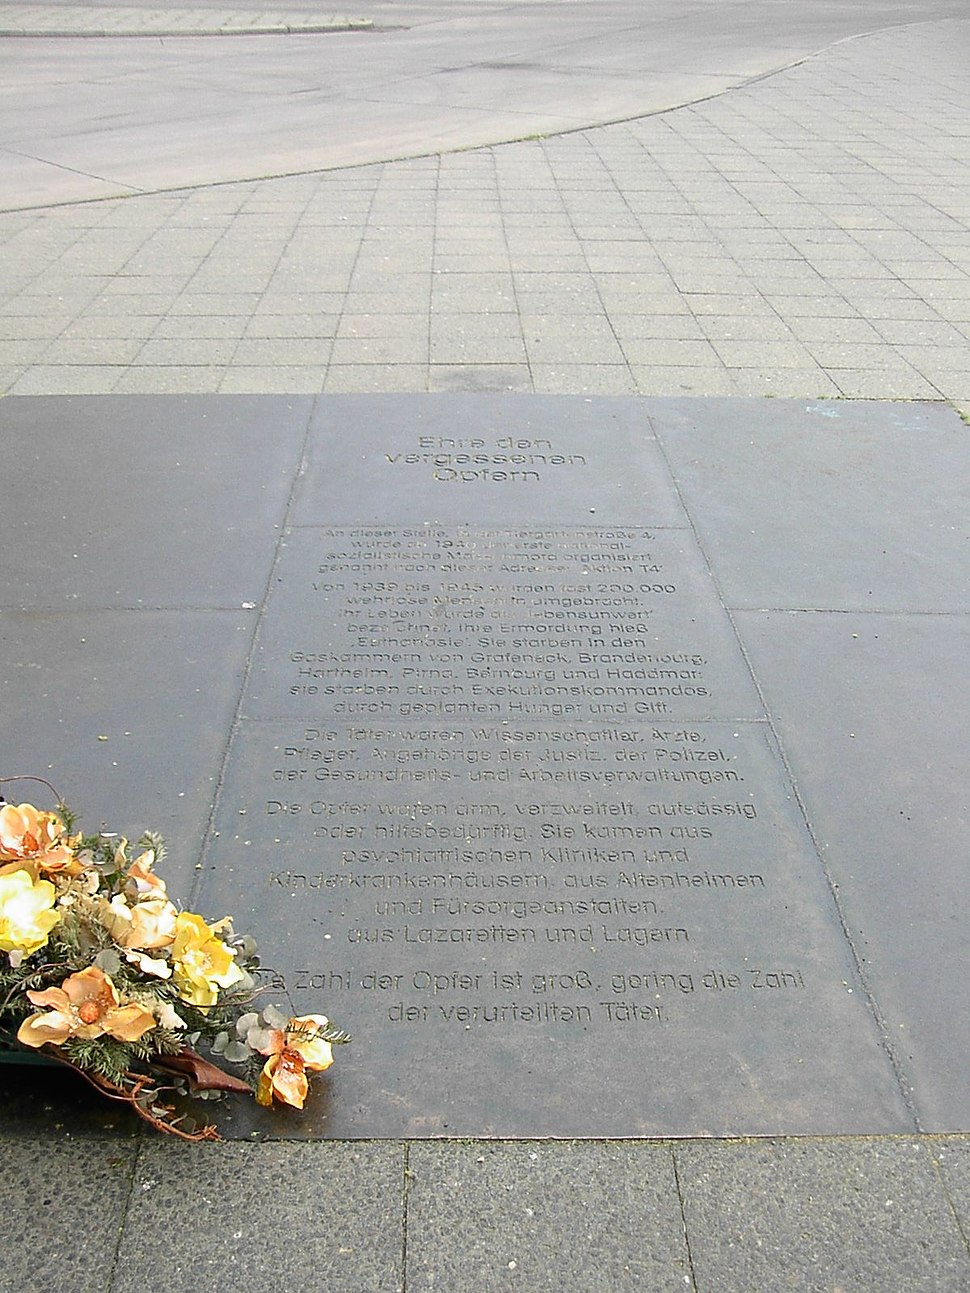 A plaque set in the pavement at No 4 Tiergartenstrasse